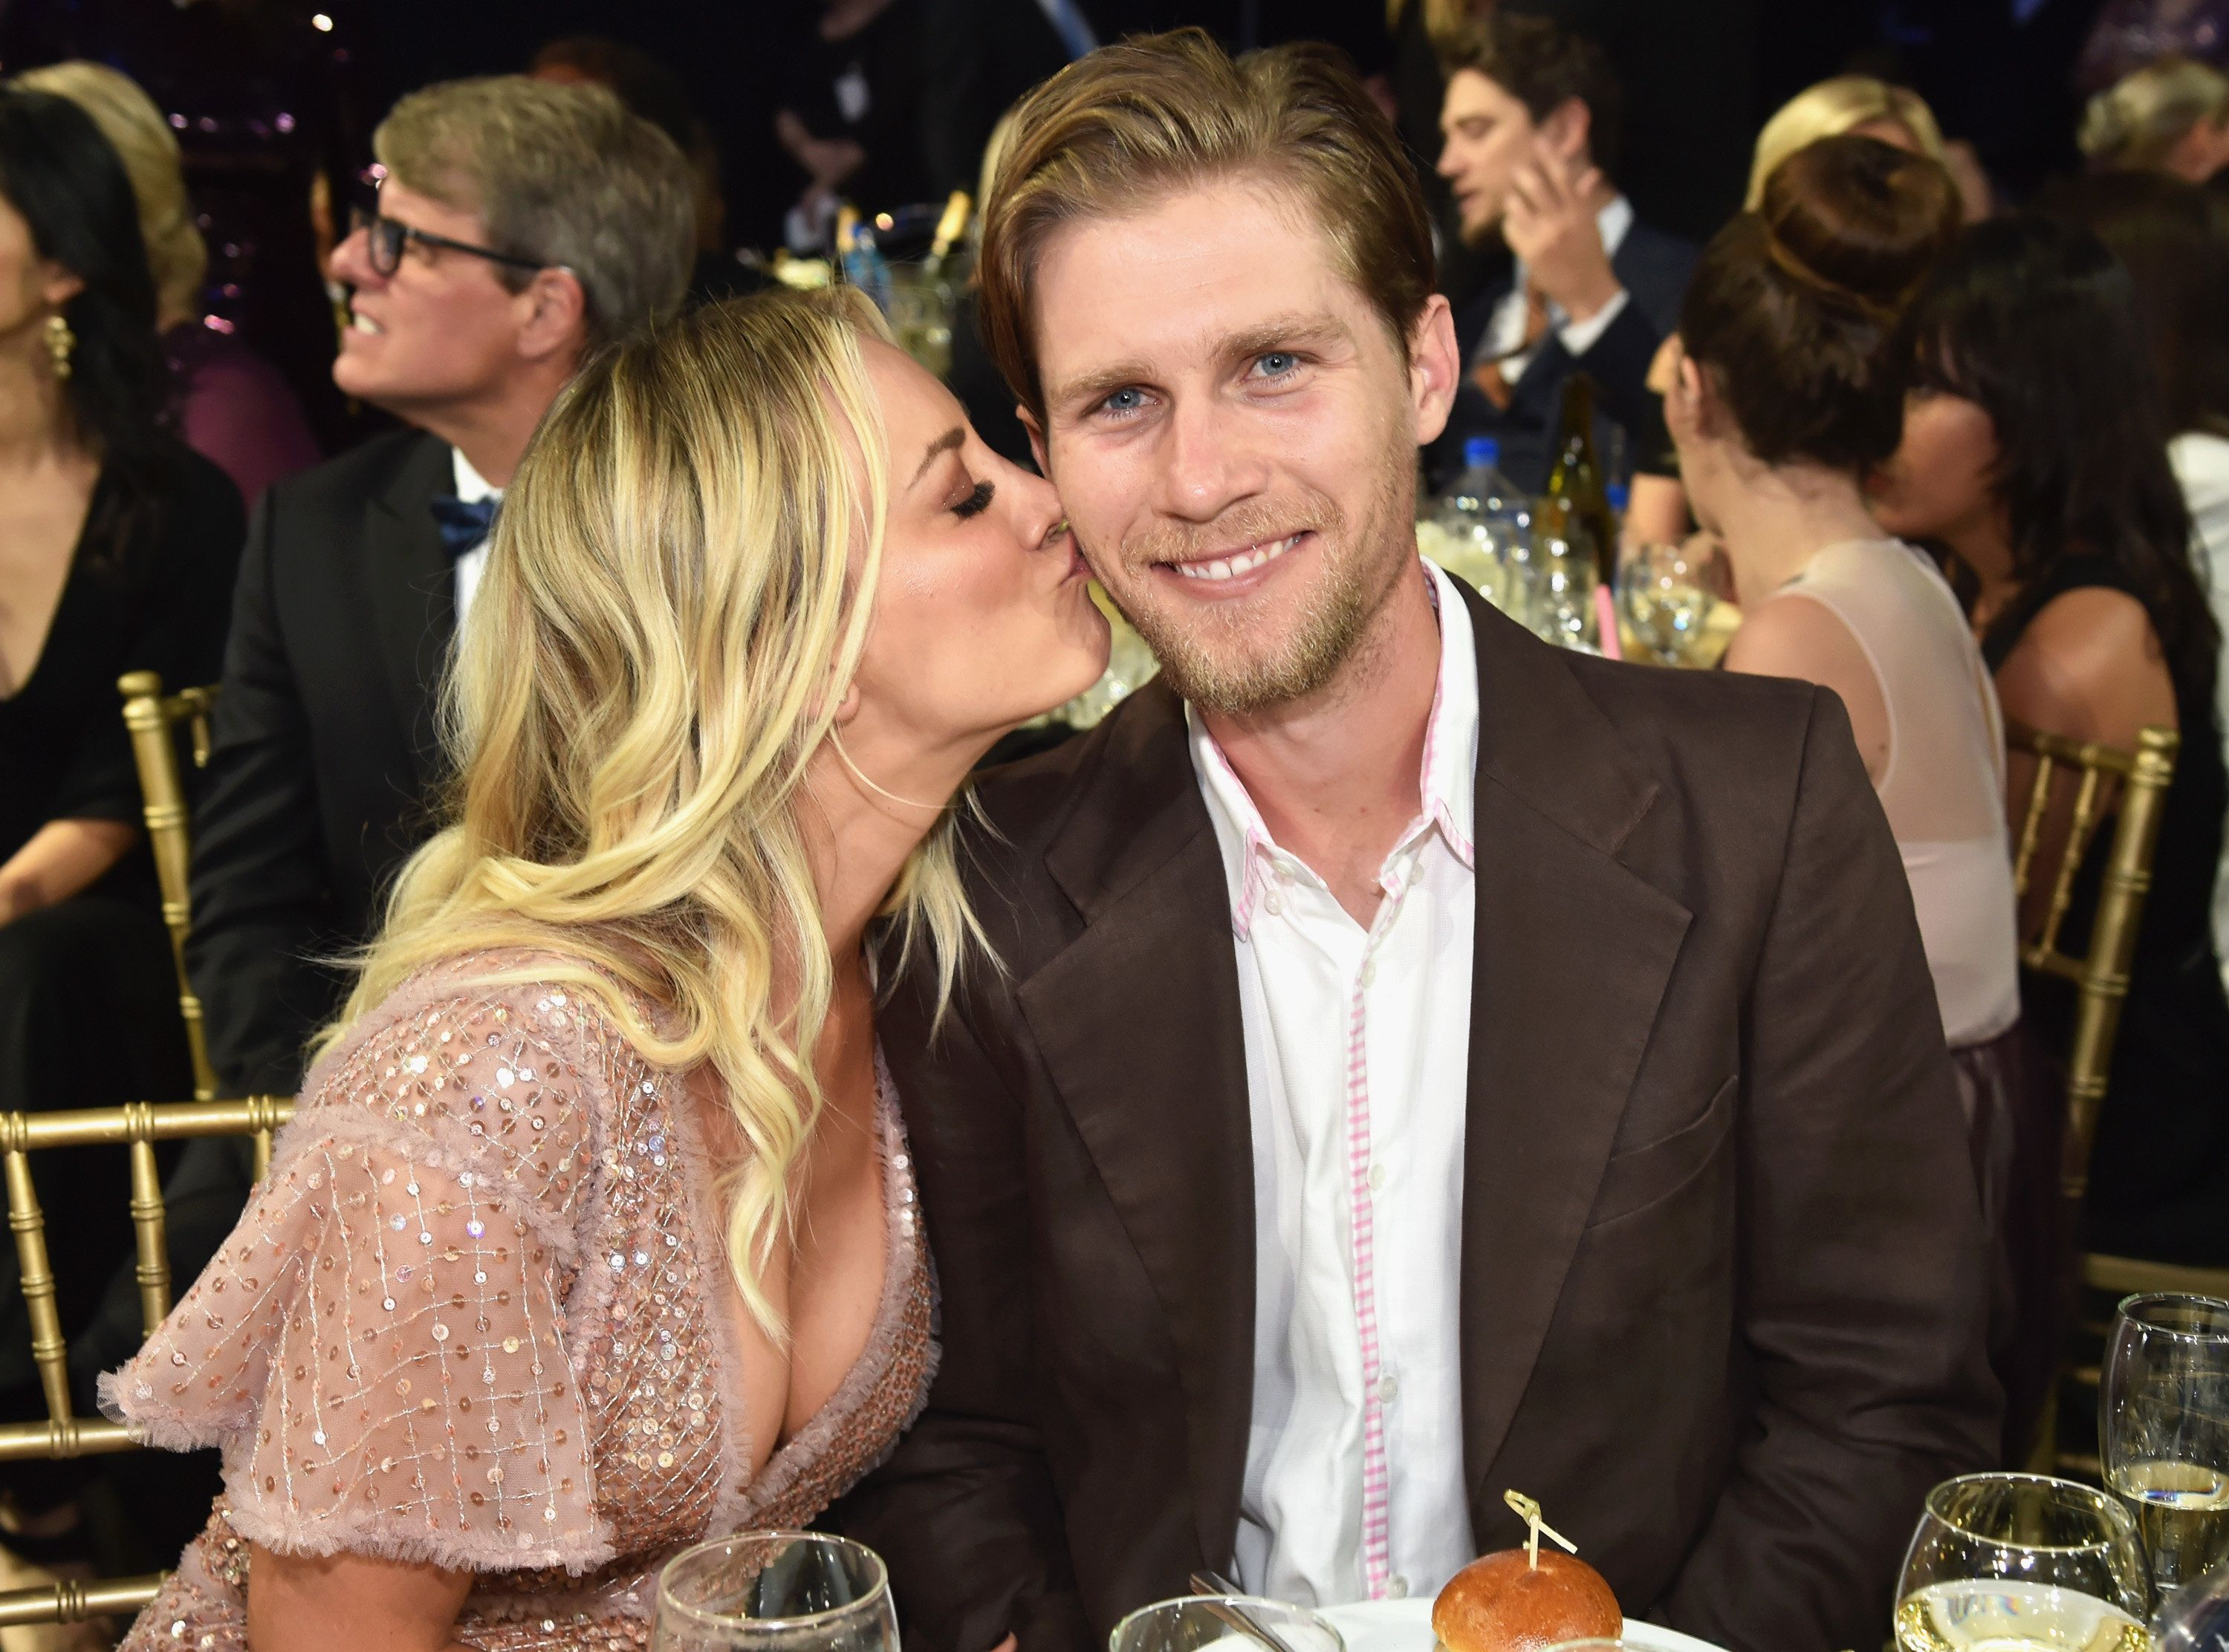 Cuoco and Cook got engaged late last year.